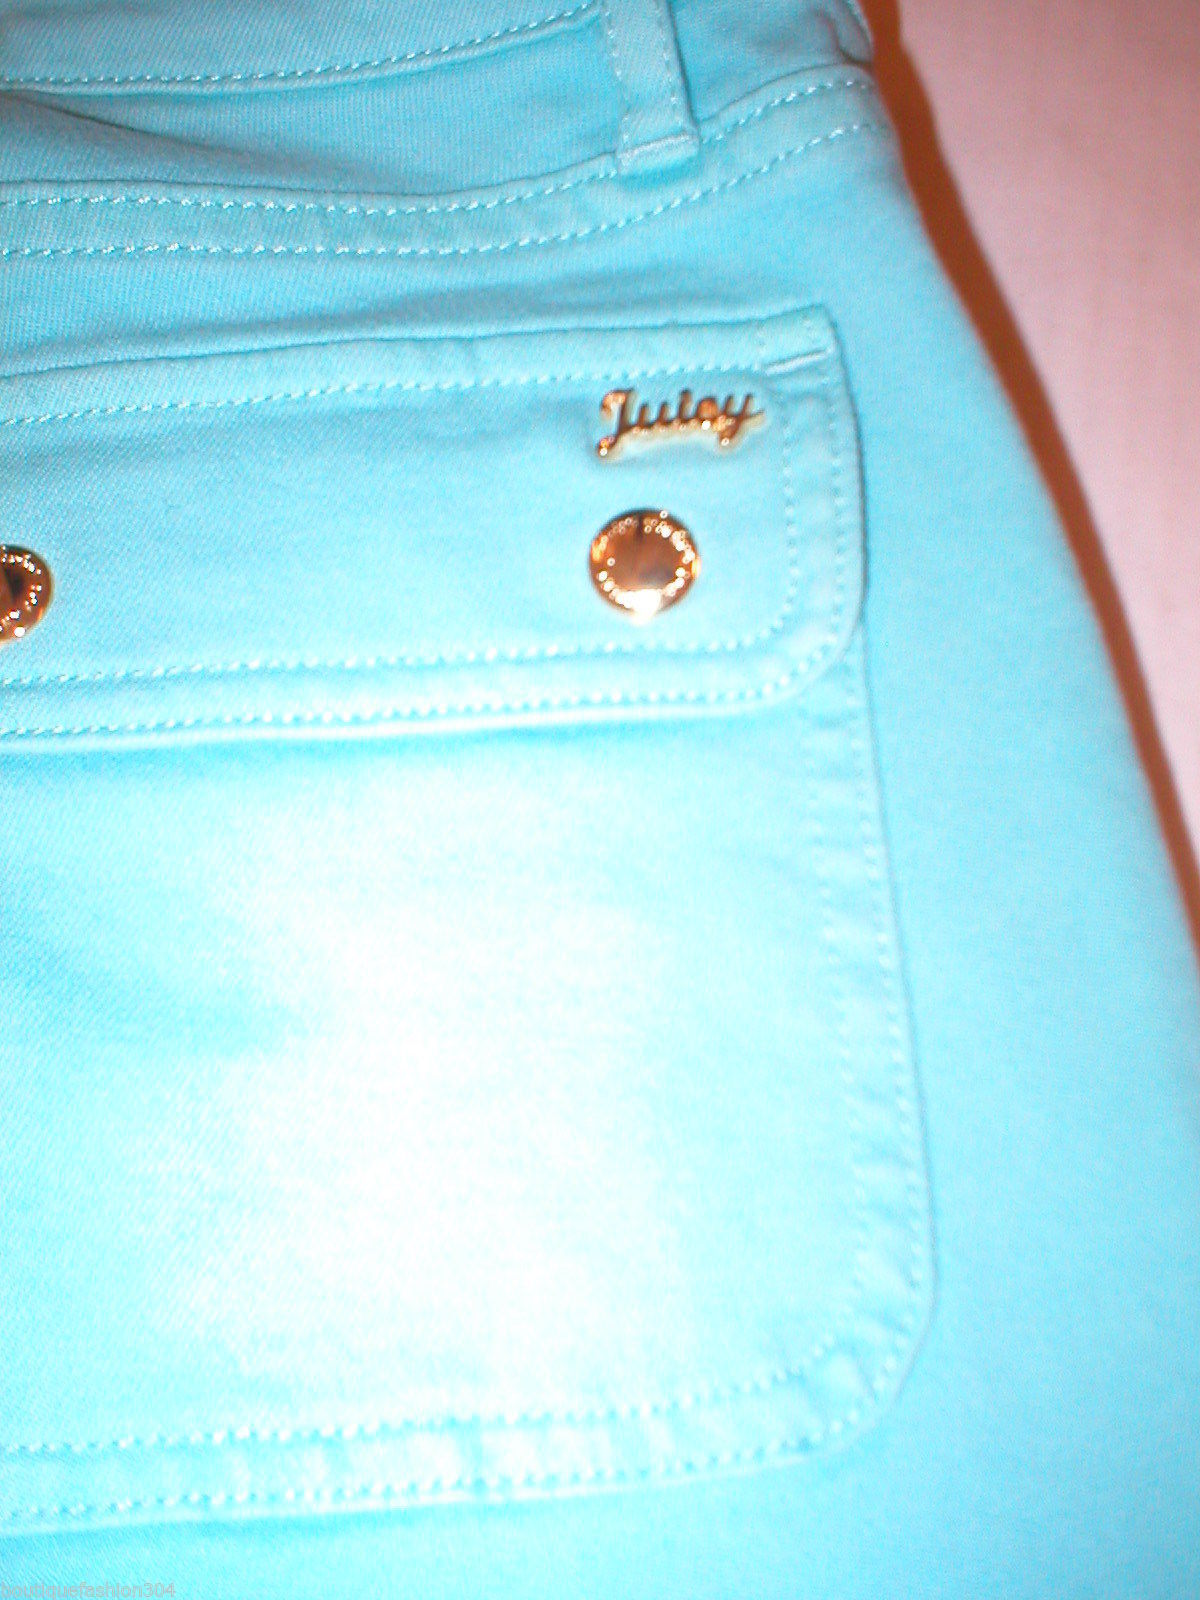 New Logo Crop Jeans Juicy Couture 25 Womens Snap Pockets Aqua Blue Teal Skinny image 3